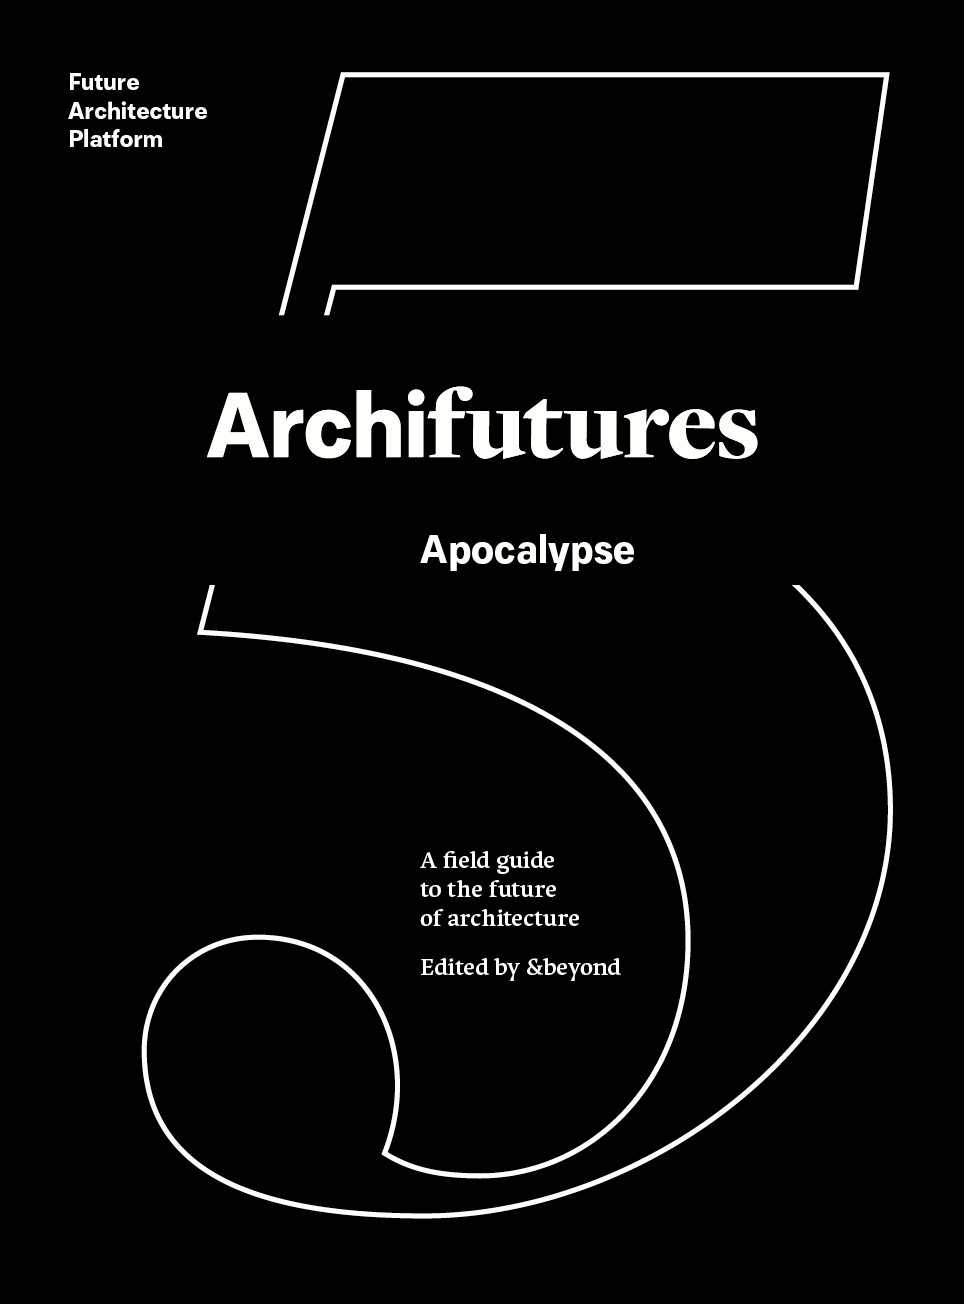 &beyond collective A field guide to speculating upon the future of architecture